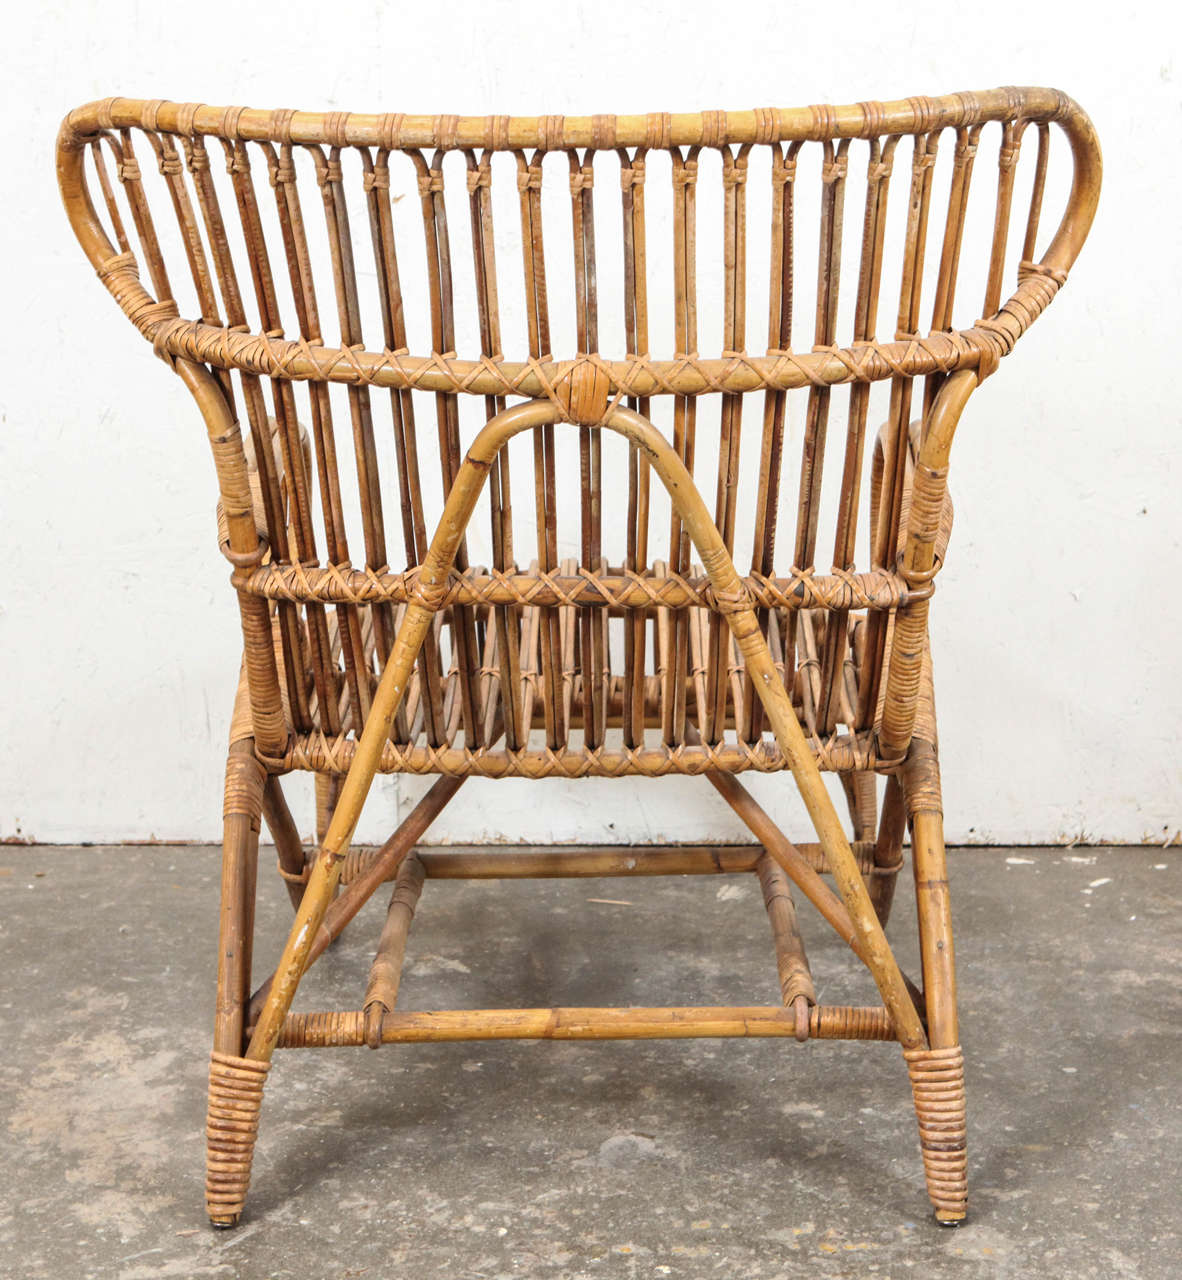 rattan wingback chairs hanging room chair vintage european at 1stdibs for sale 2